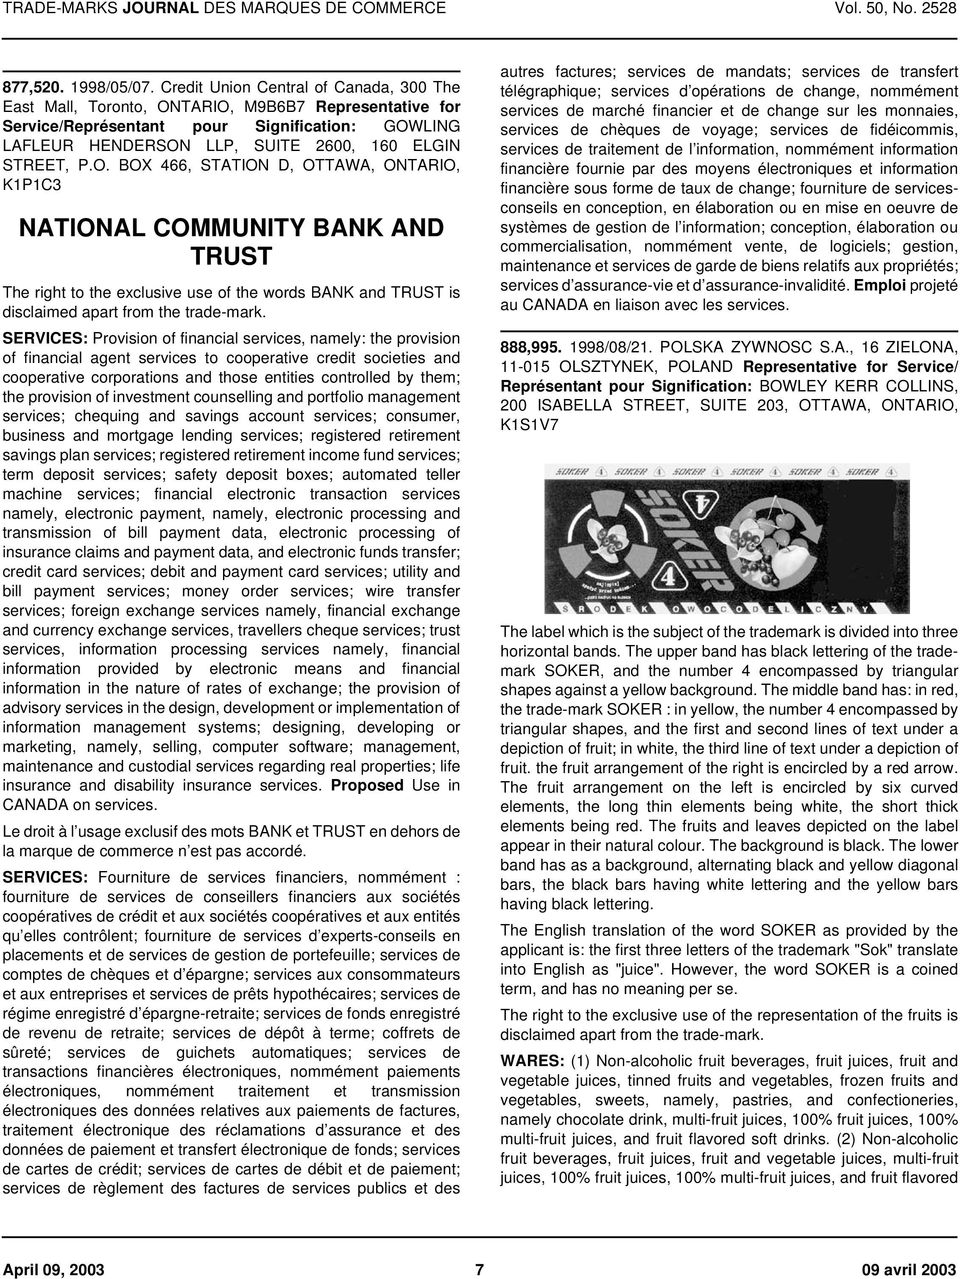 O. BOX 466, STATION D, OTTAWA, ONTARIO, K1P1C3 NATIONAL COMMUNITY BANK AND TRUST The right to the exclusive use of the words BANK and TRUST is disclaimed apart from the trade-mark.